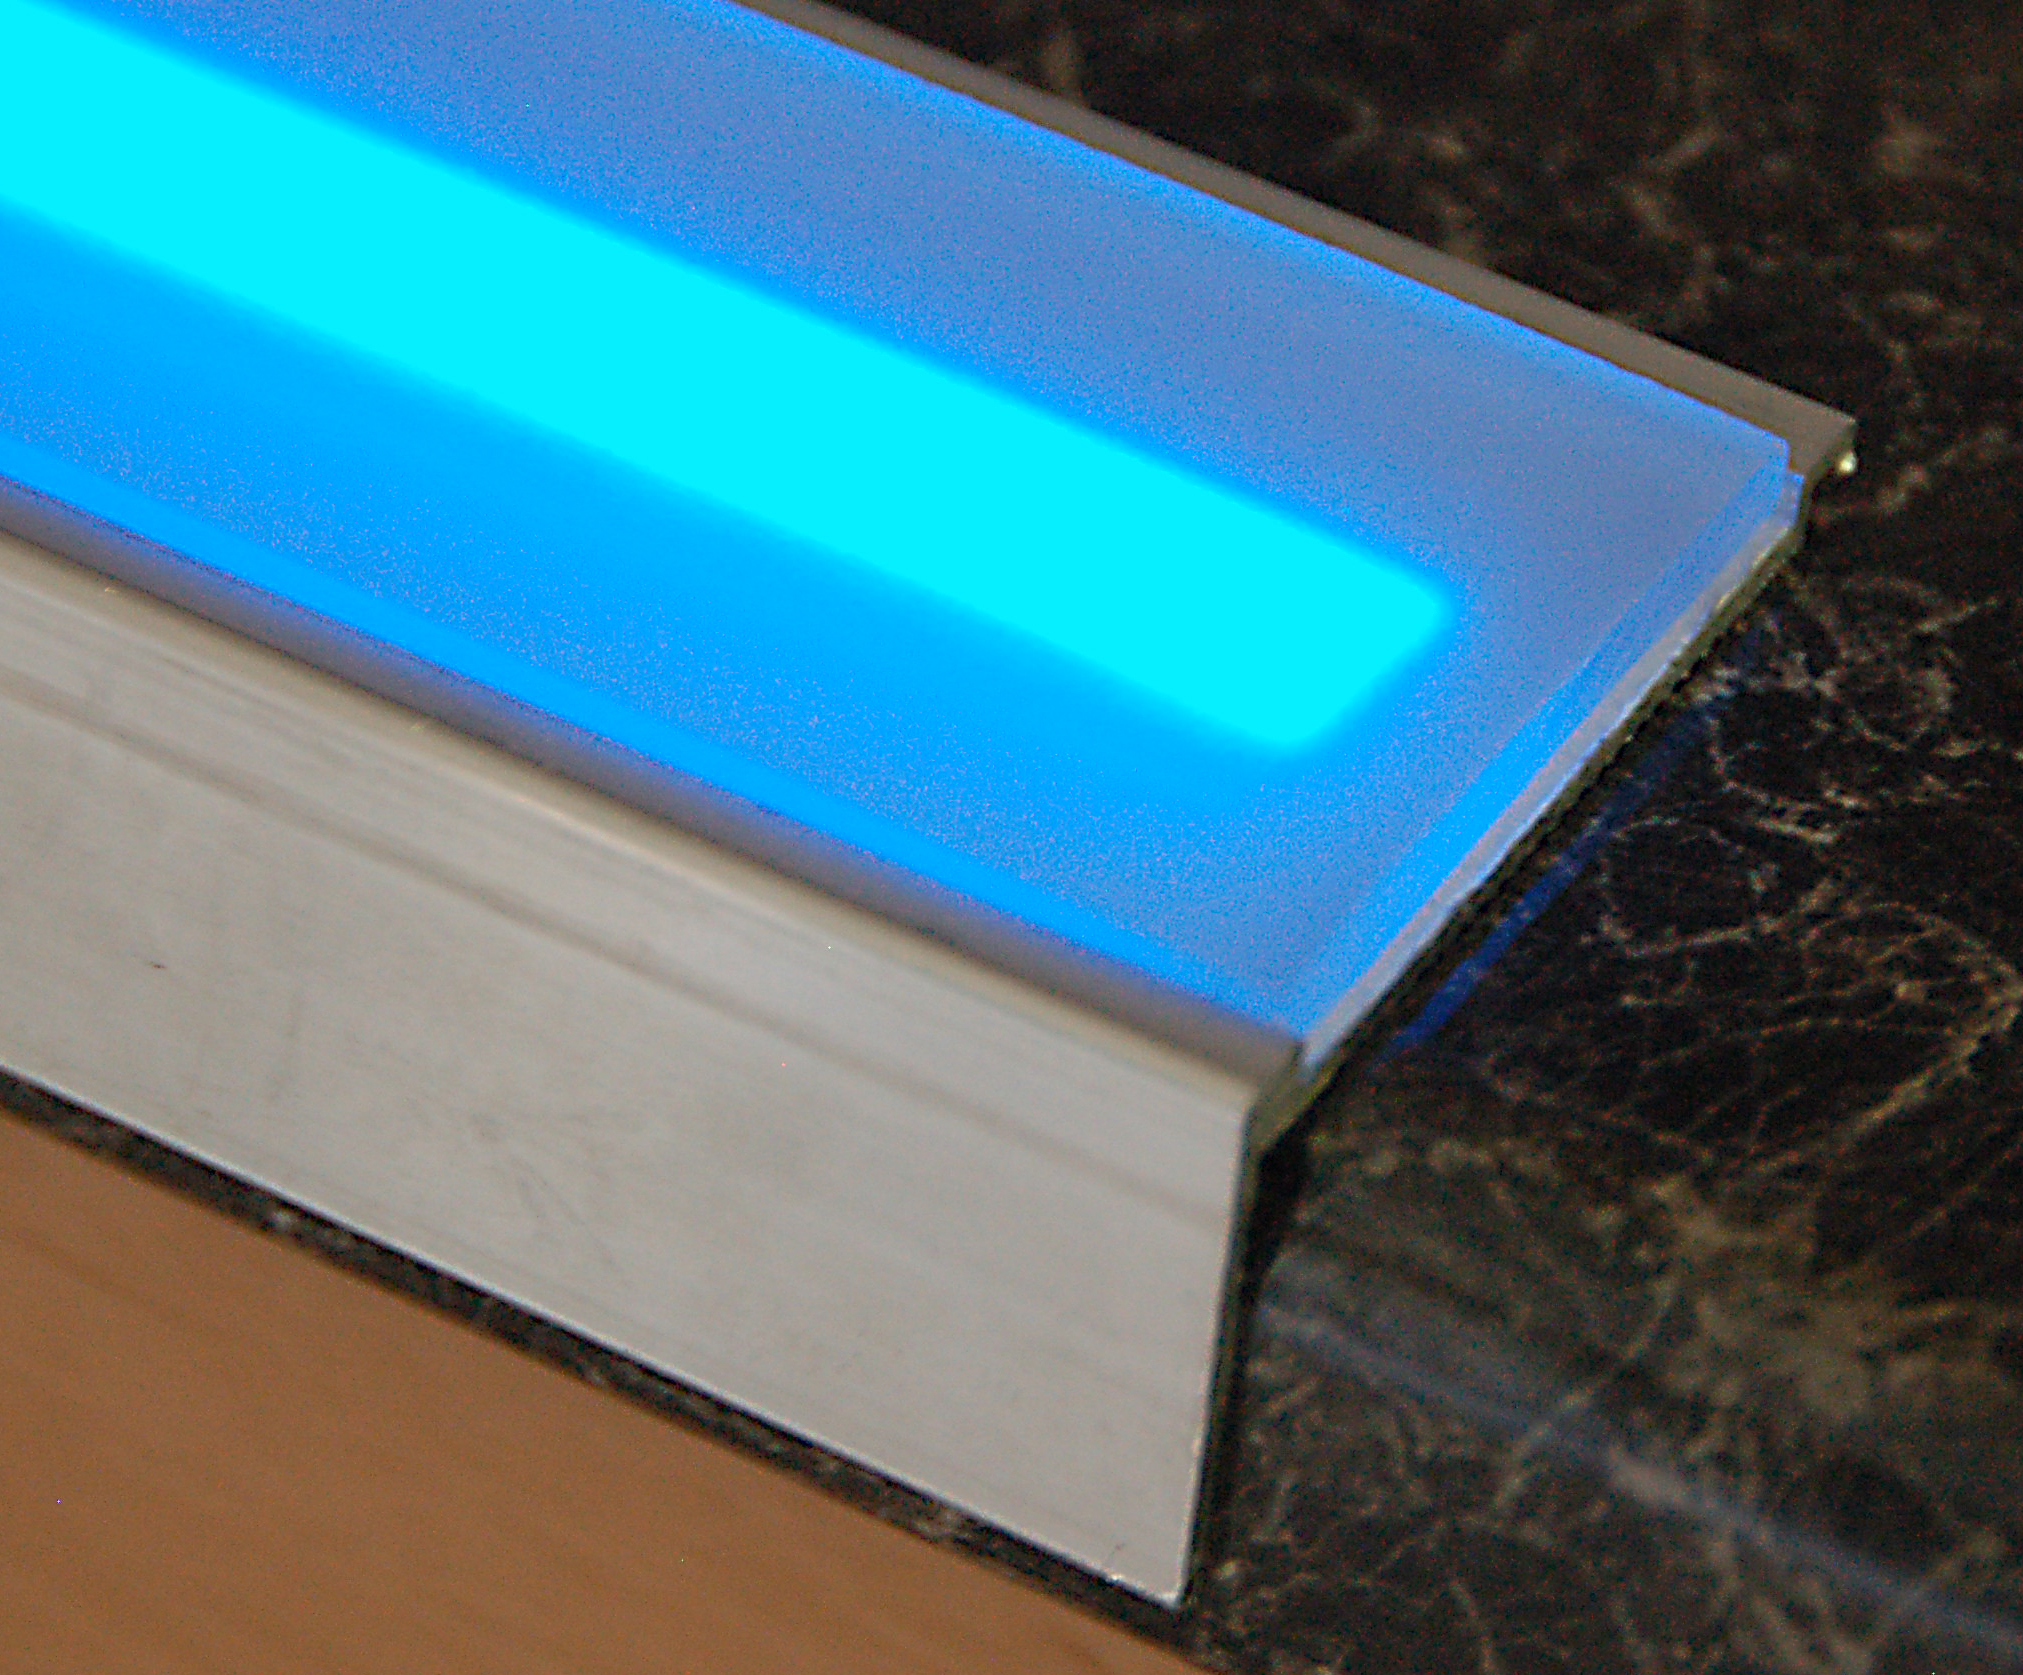 LumaGrip With Blue Light Tape